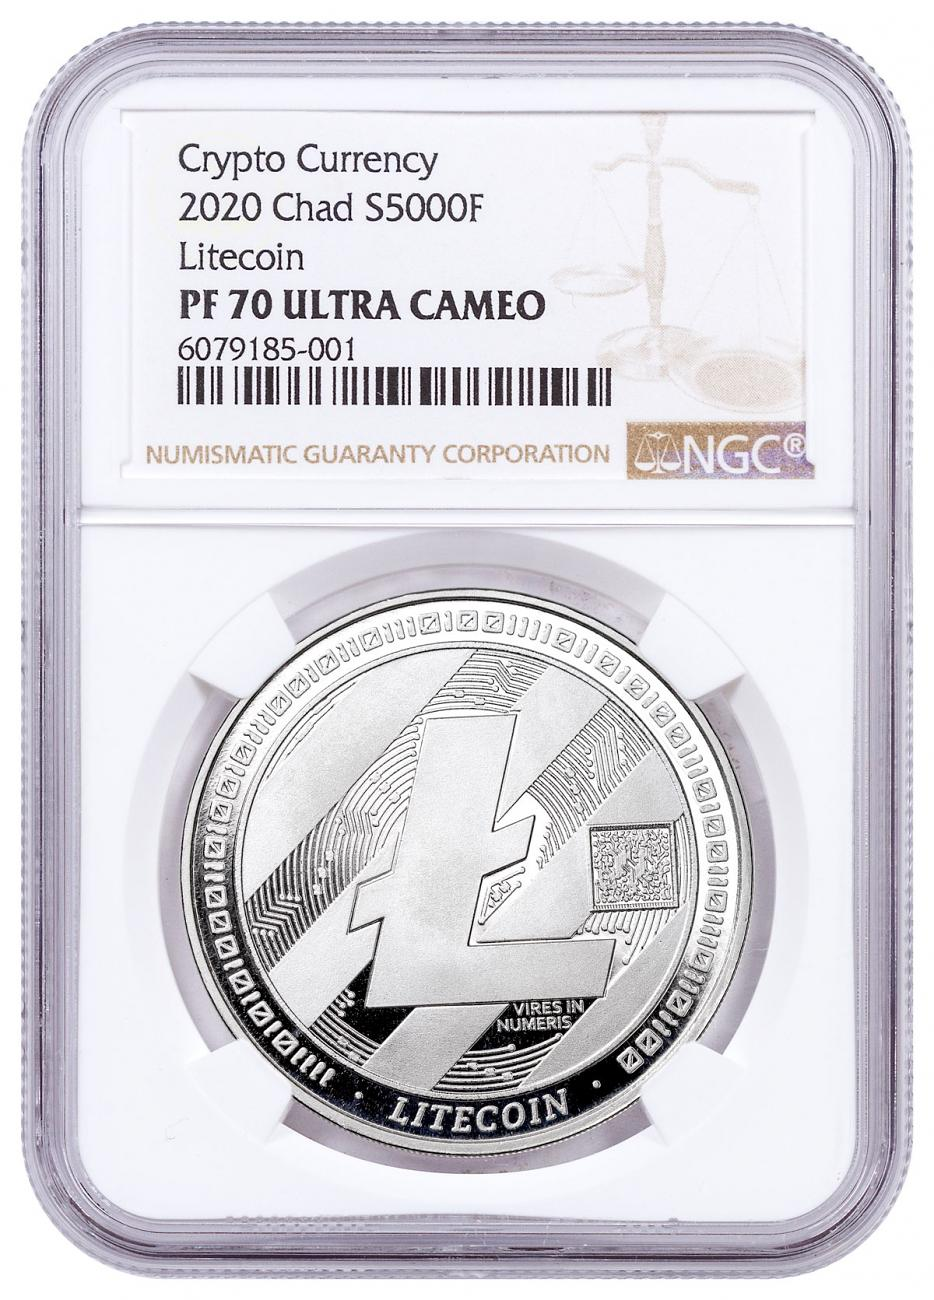 2020 Republic of Chad Fr5,000 1 oz Silver LiteCoin Crypto Currency 1 oz Silver Proof Coin NGC PF70